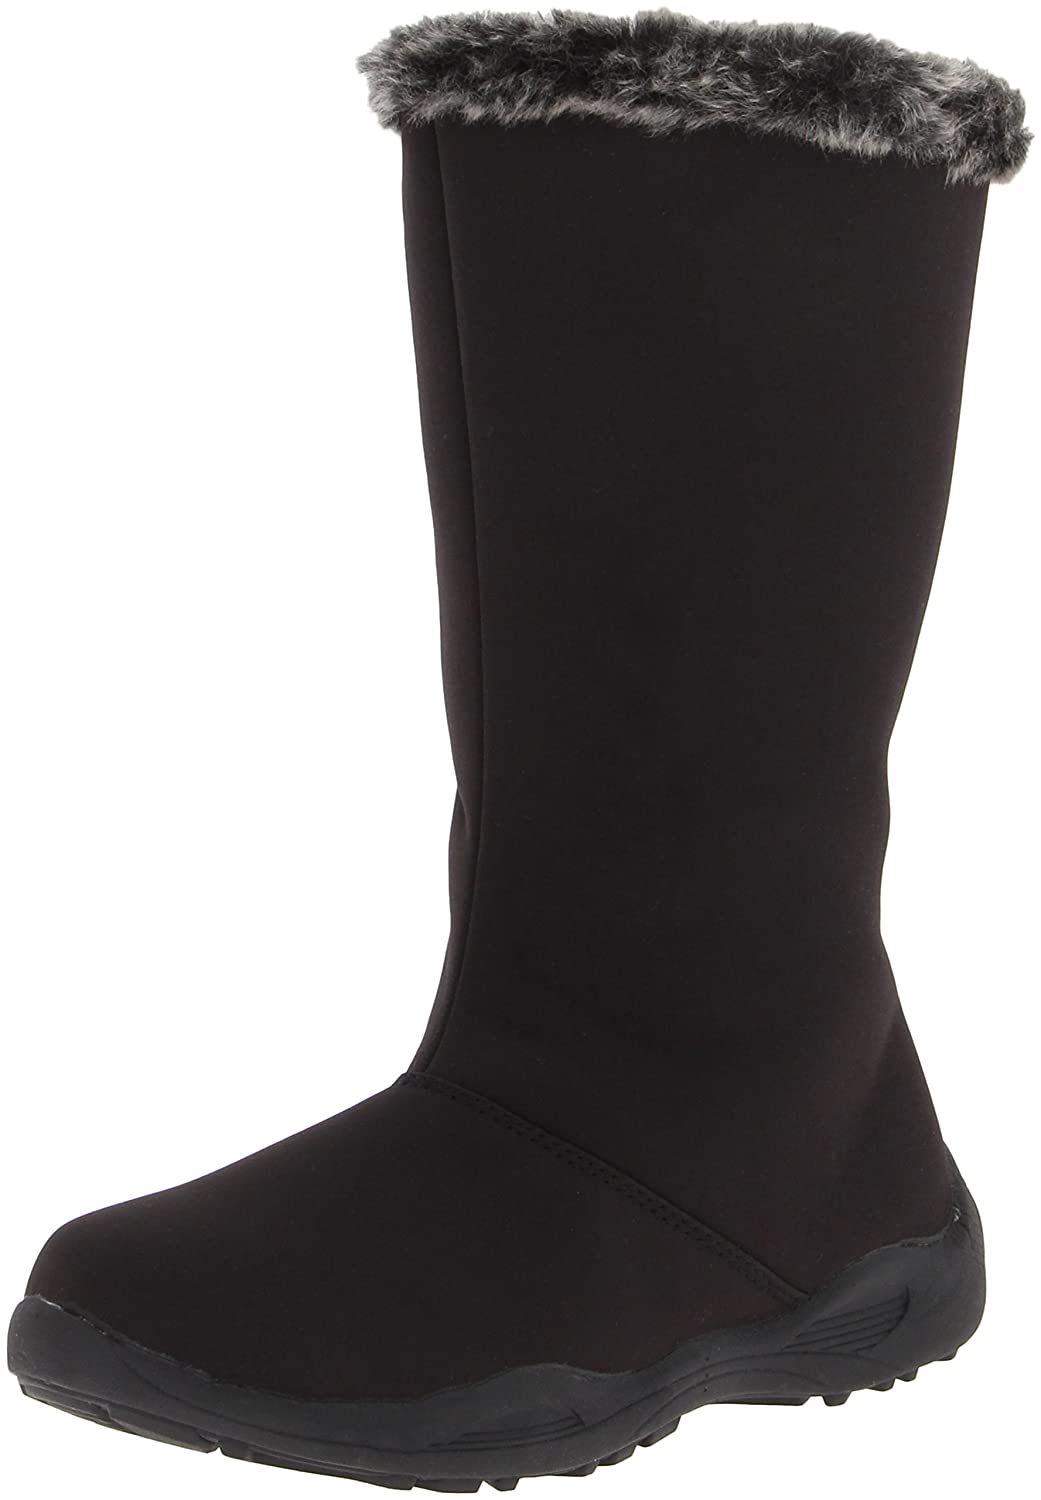 Propet Women's Madison Tall Zip Boot B00BBI2B0C 6 D US|Black